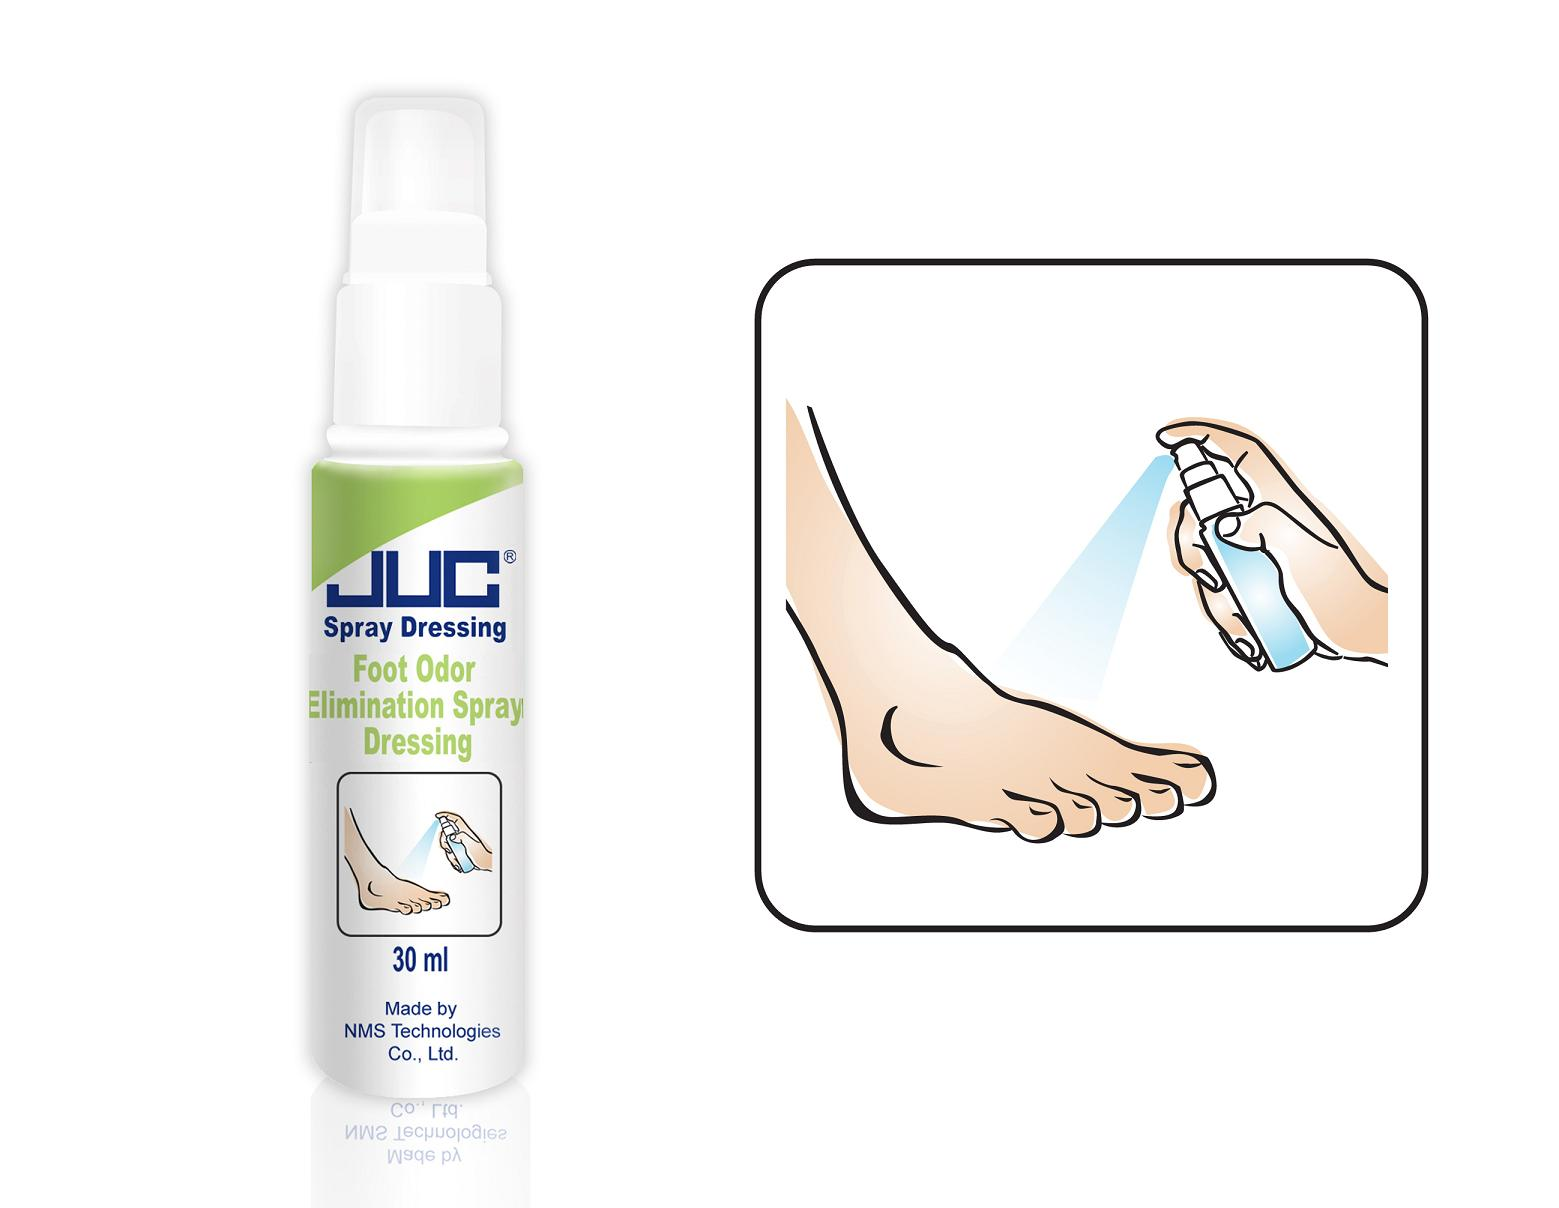 Foot odor products